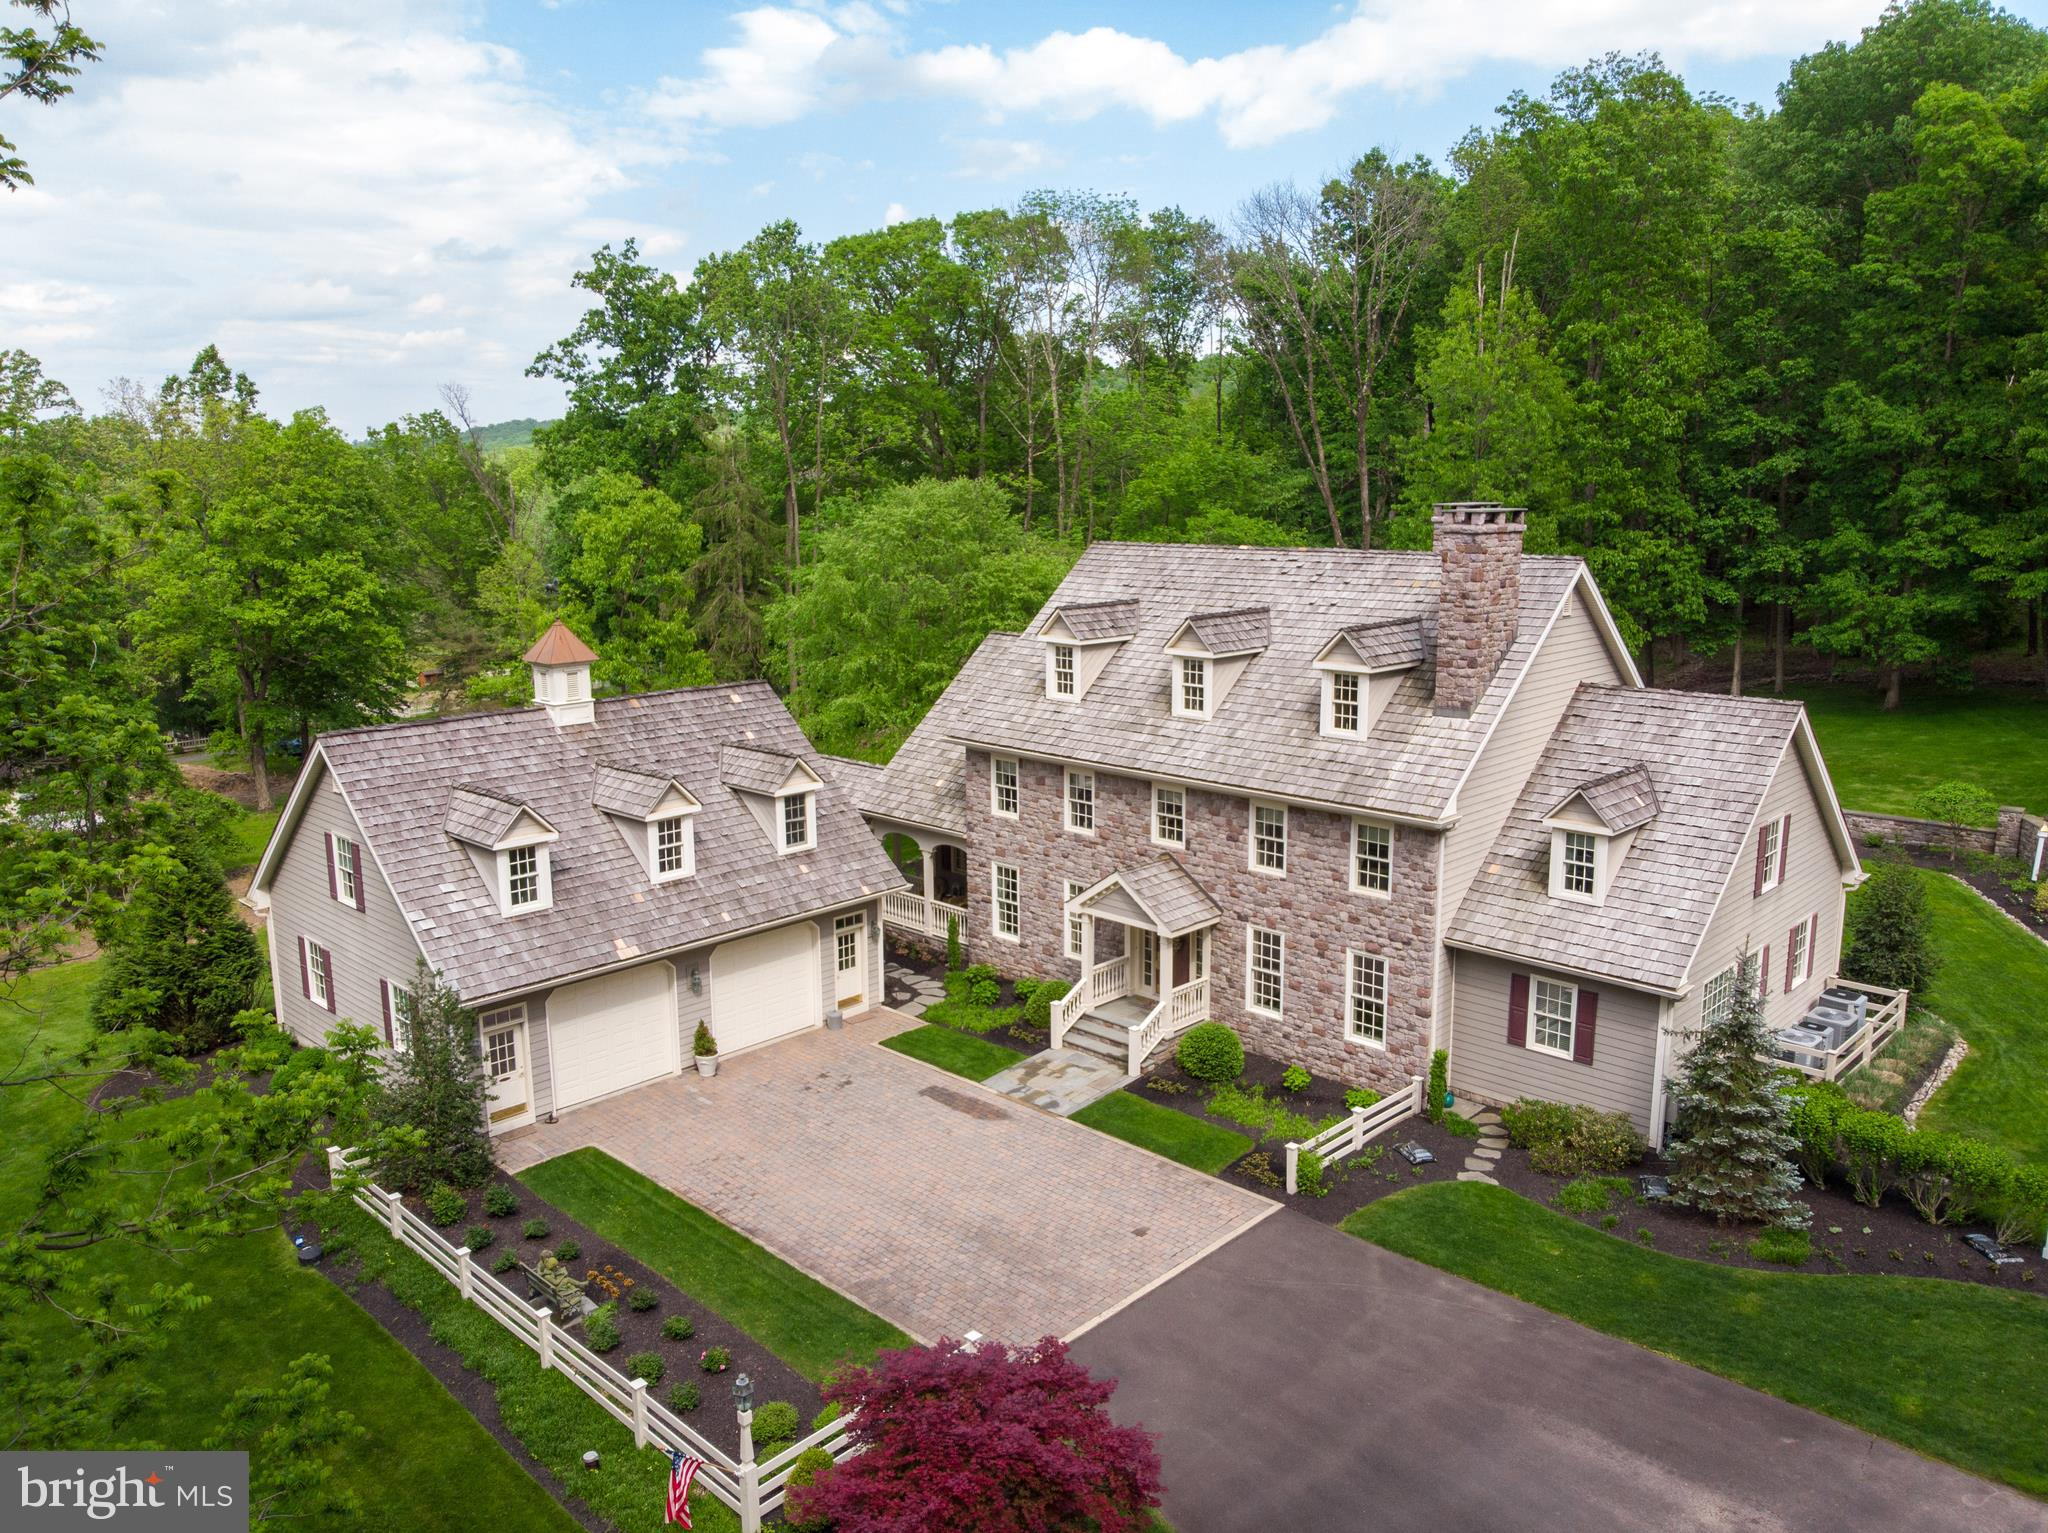 278 THOMPSON MILL ROAD, NEW HOPE, PA 18938